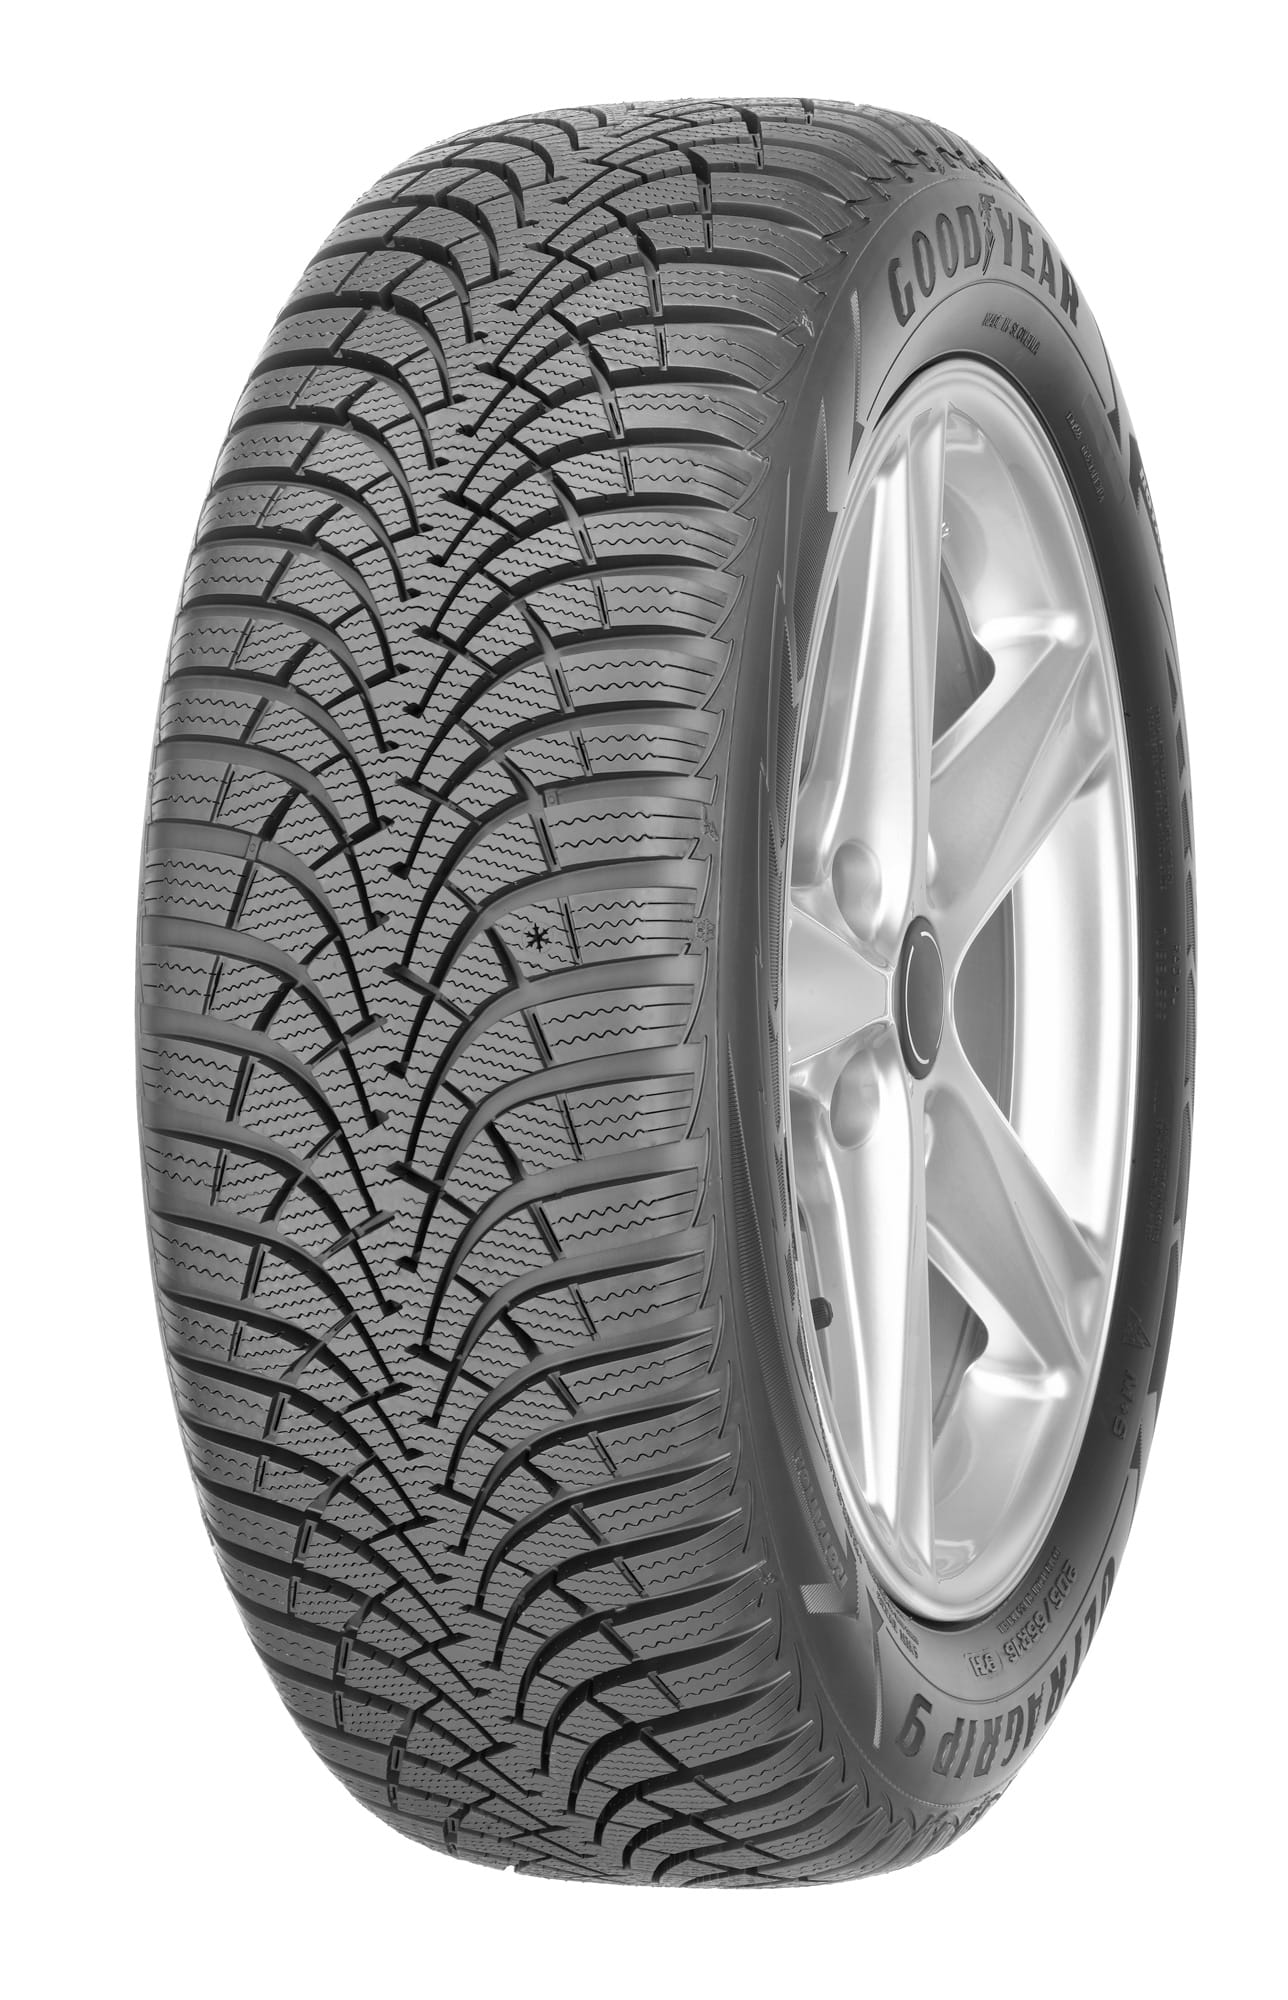 Gomme Nuove Goodyear 195/60 R15 88T ULTRAGRIP 9 M+S pneumatici nuovi Invernale